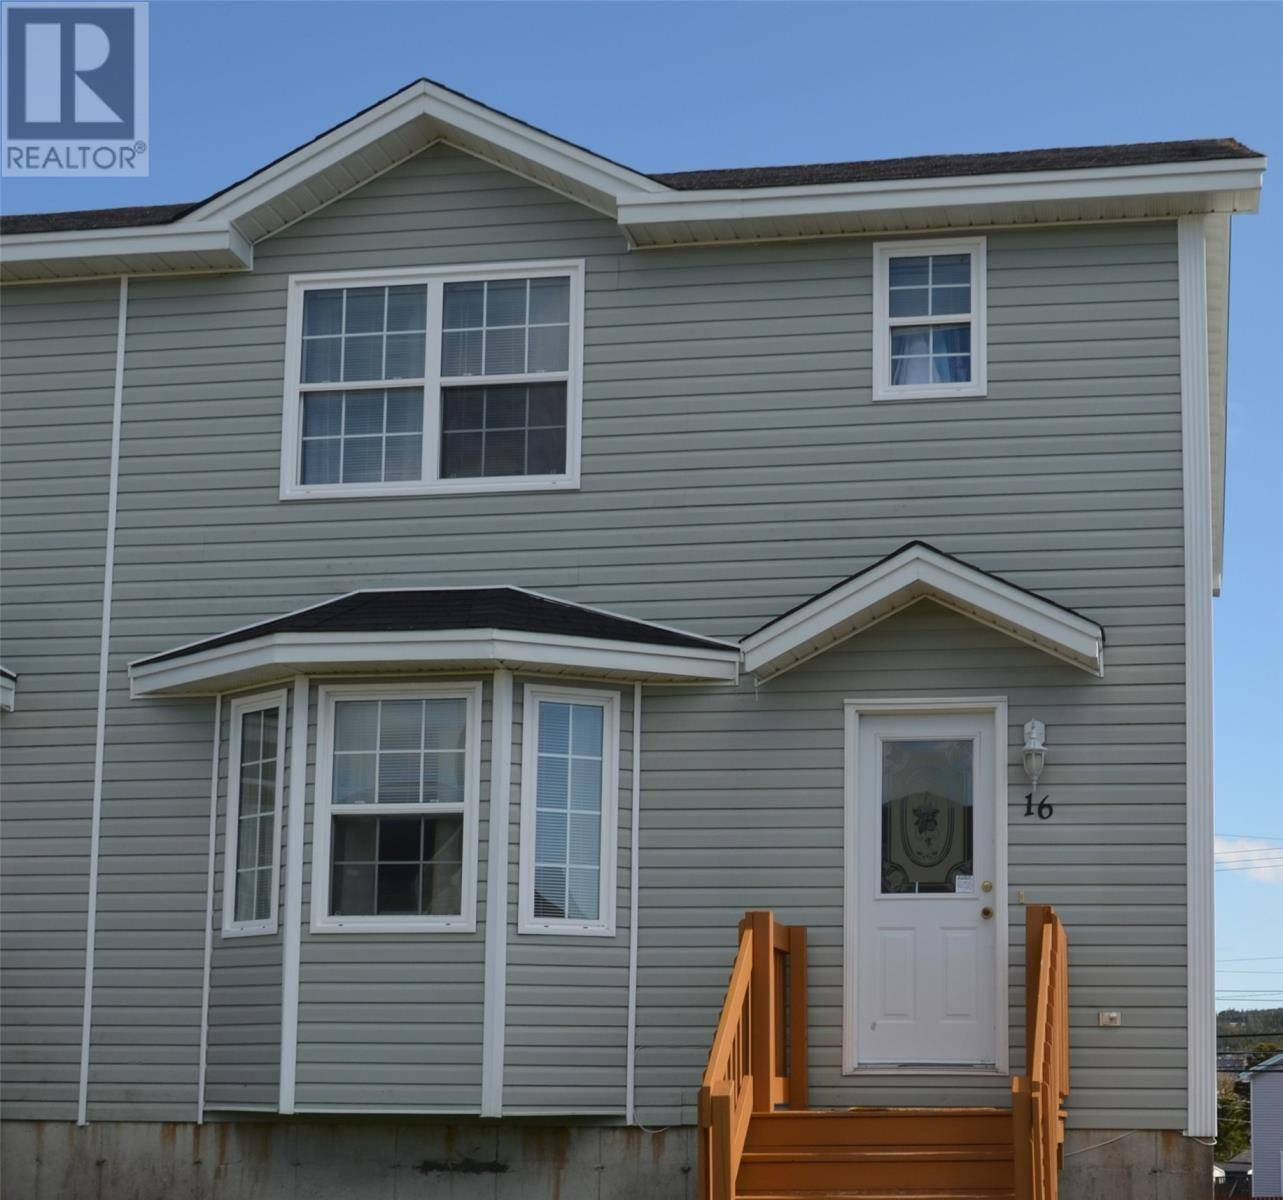 House for sale at 16 Meeker Pl St. John's Newfoundland - MLS: 1212043